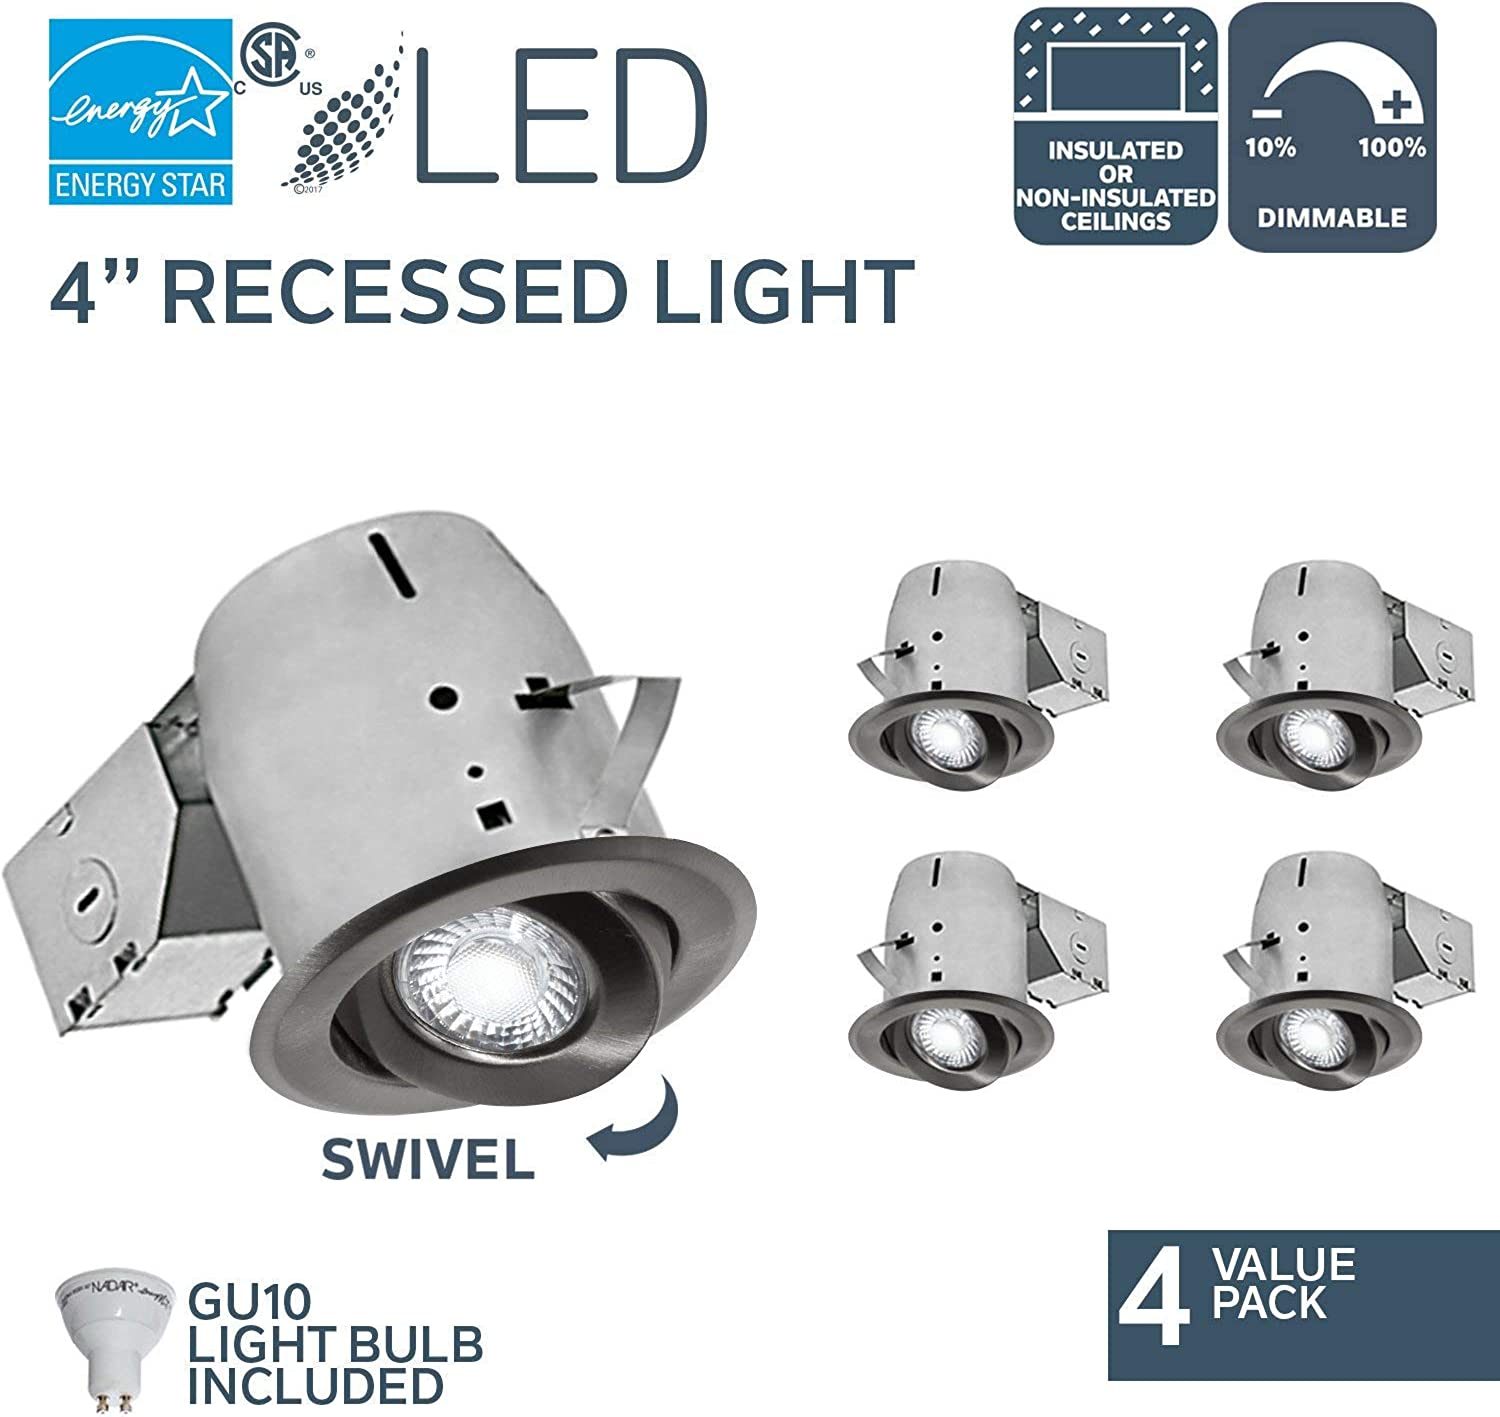 Nadair CP378L-GU4BN 4 Pack 4in LED Swivel Dimmable Downlight Recessed Light , 3000K, 4 X LED GU10 550 Lumens Bulb Included, IC Rated, Brushed Nickel